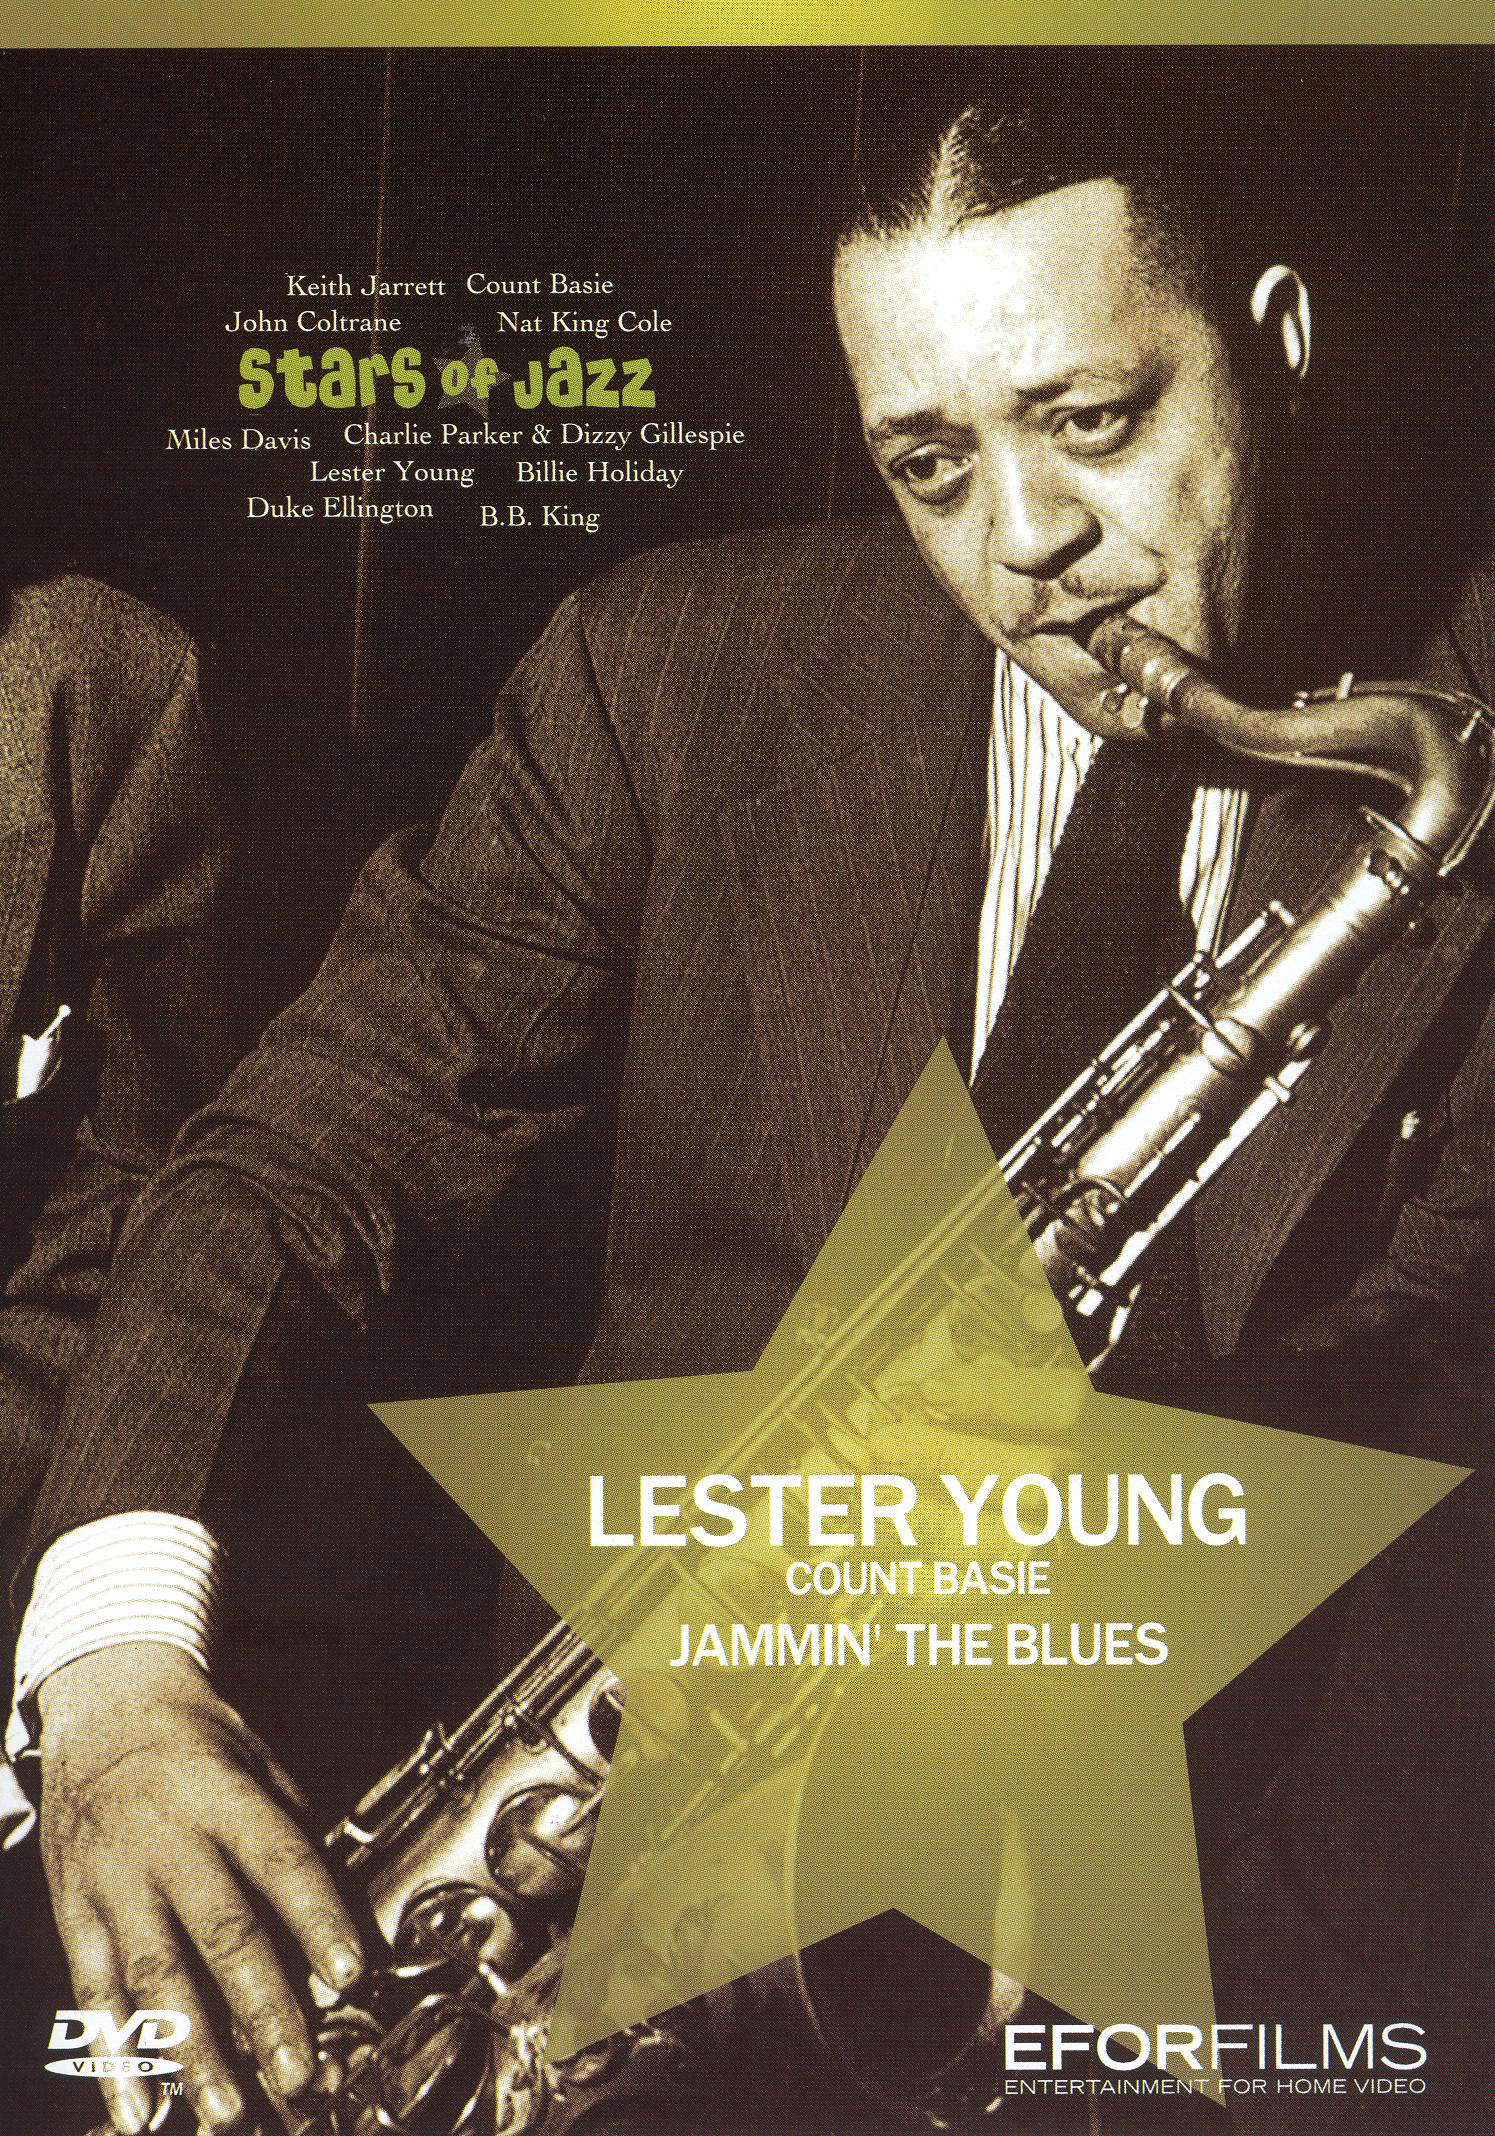 Count Basie/Lester Young: Jammin' the Blues